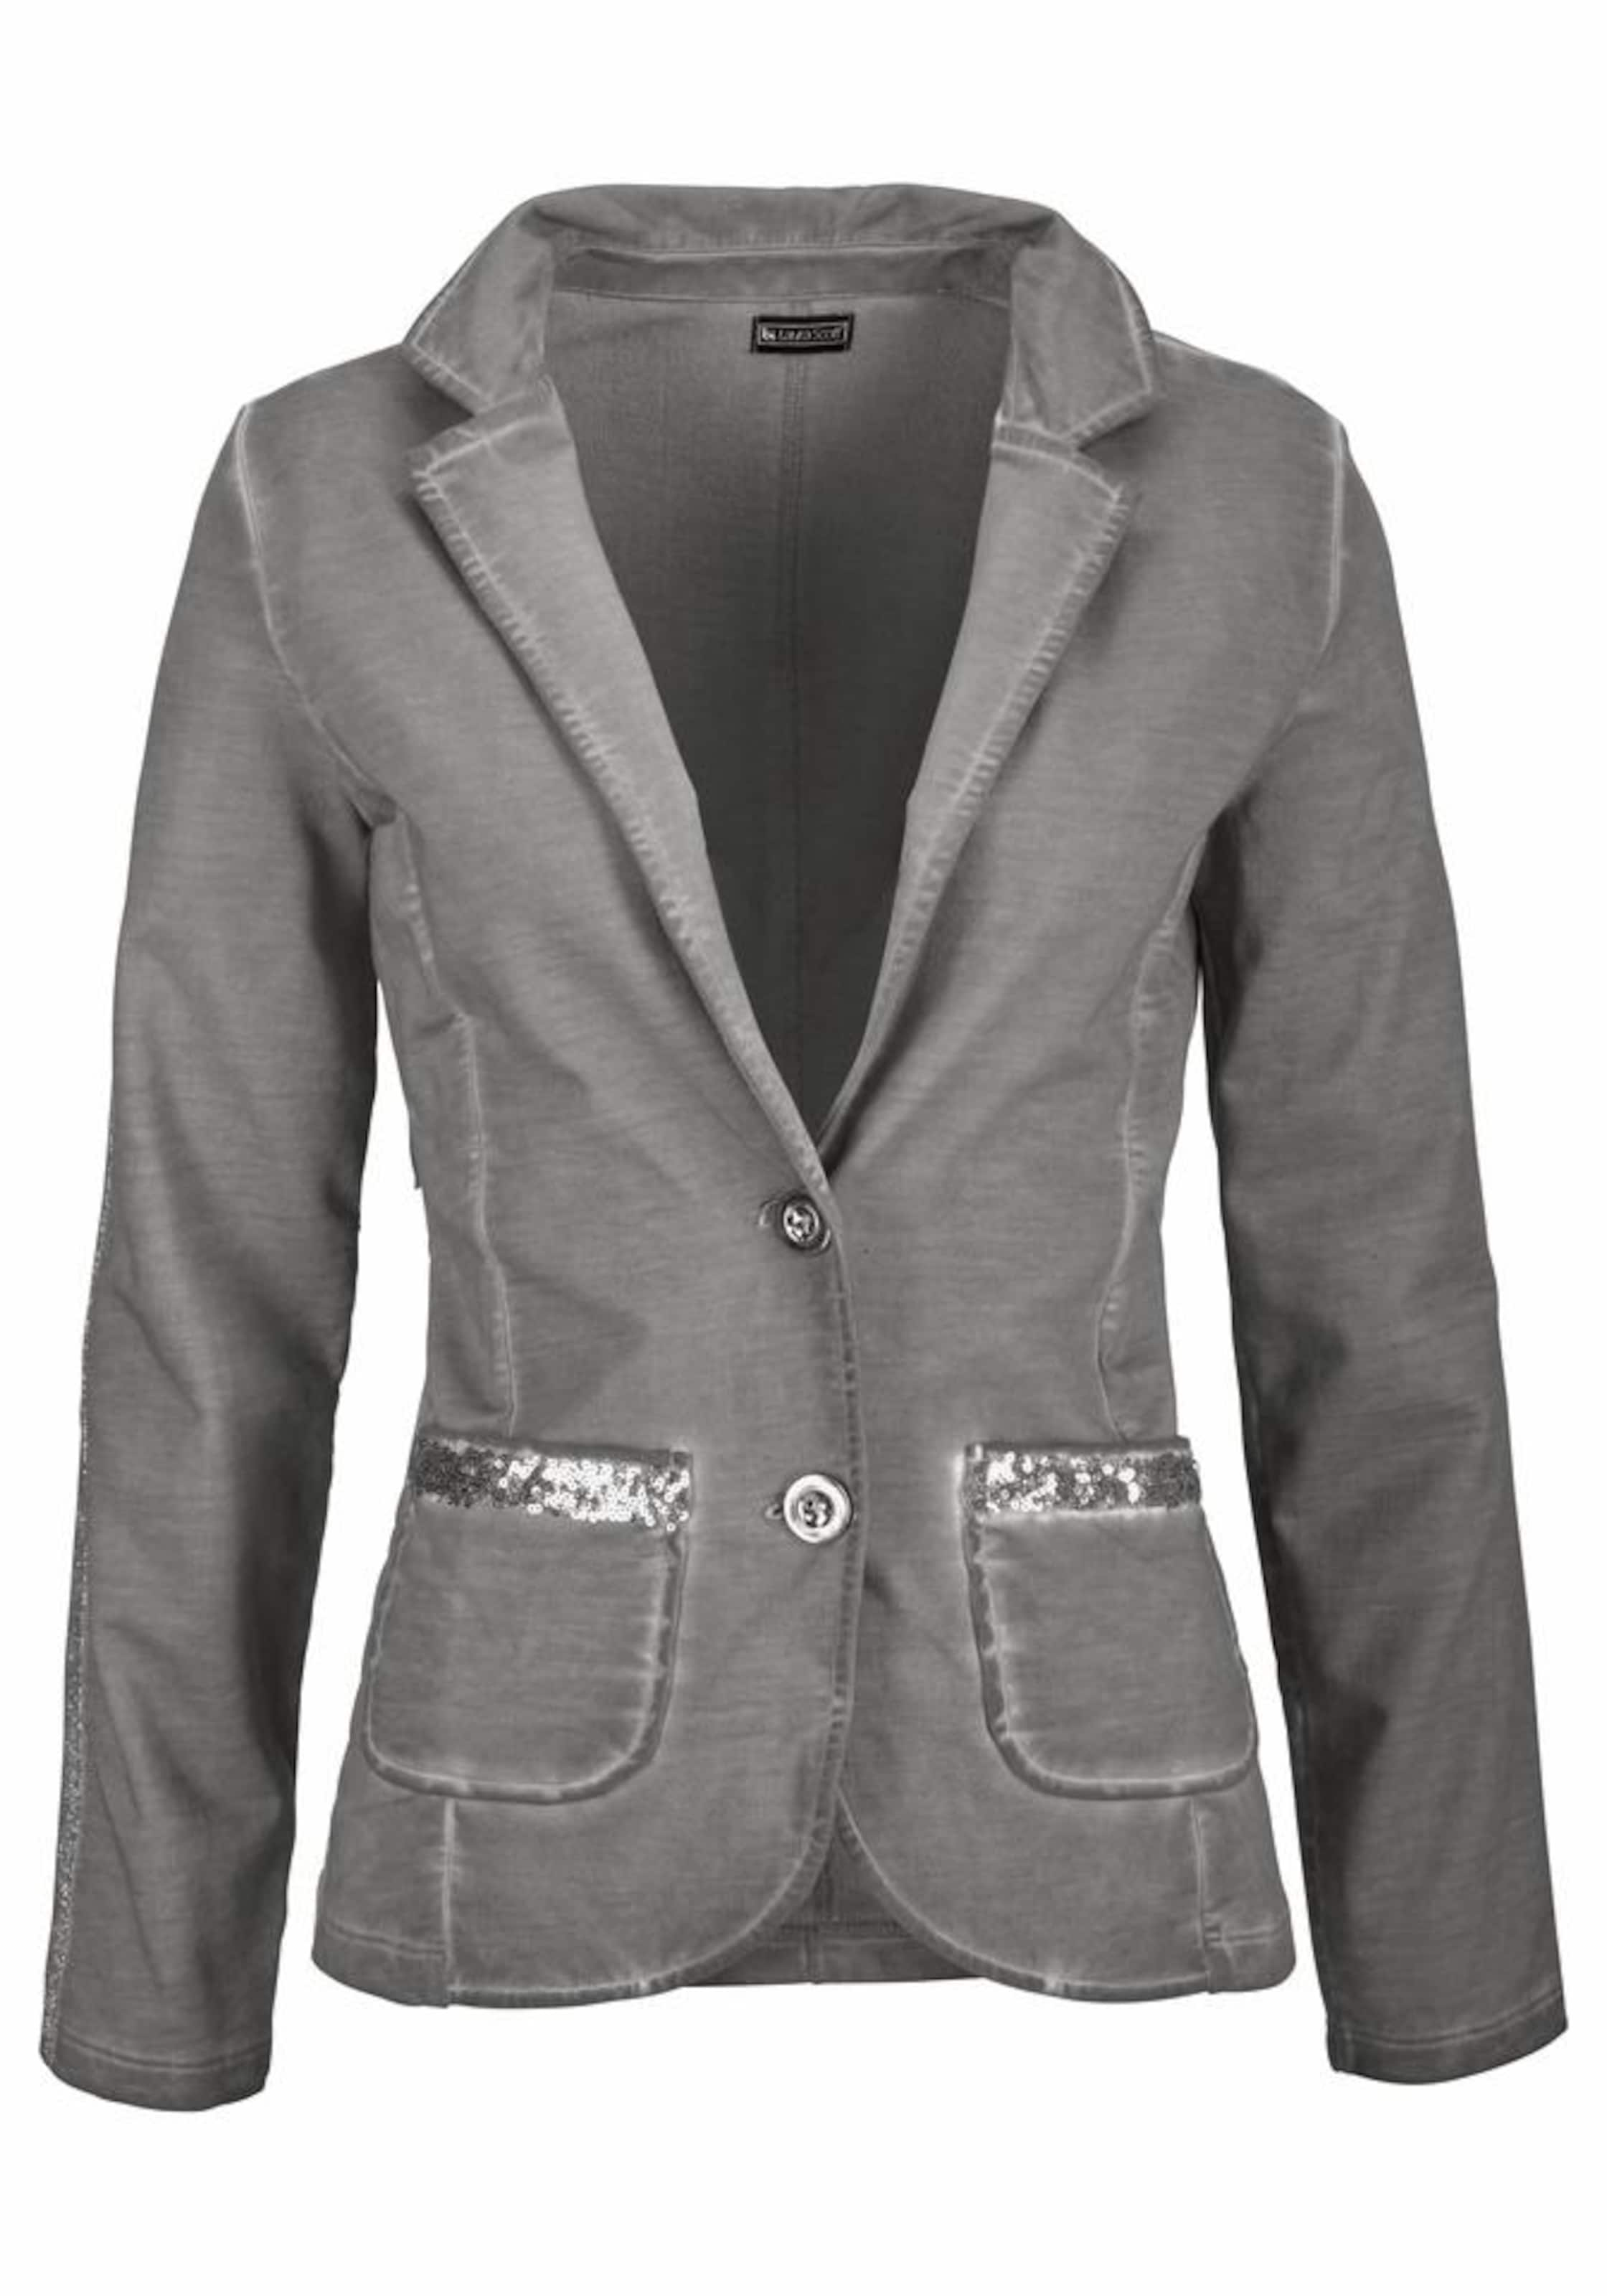 Laura Scott Laura Sweatblazer In In Sweatblazer Laura Scott Grau Grau qSUMVzp